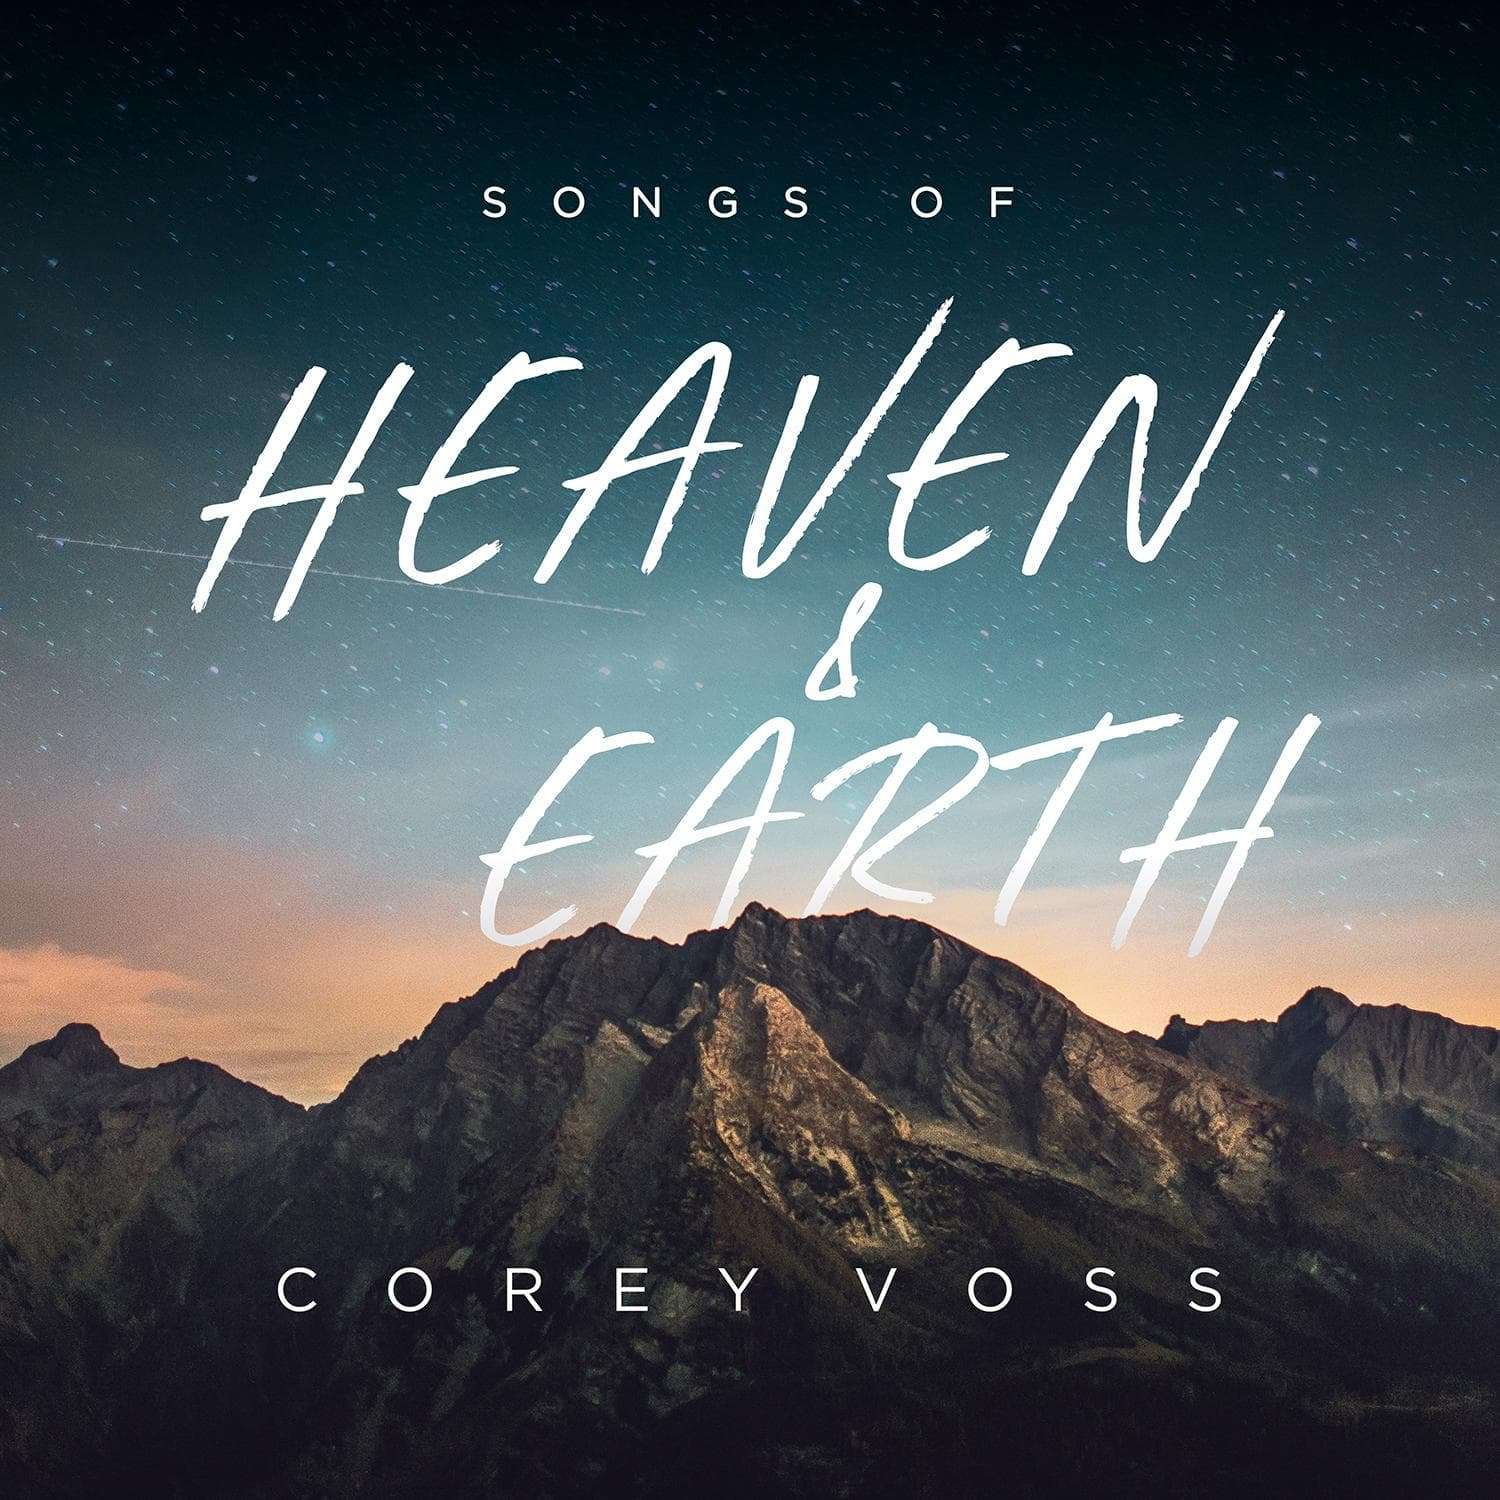 Songs Of Heaven and Earth - Corey Voss